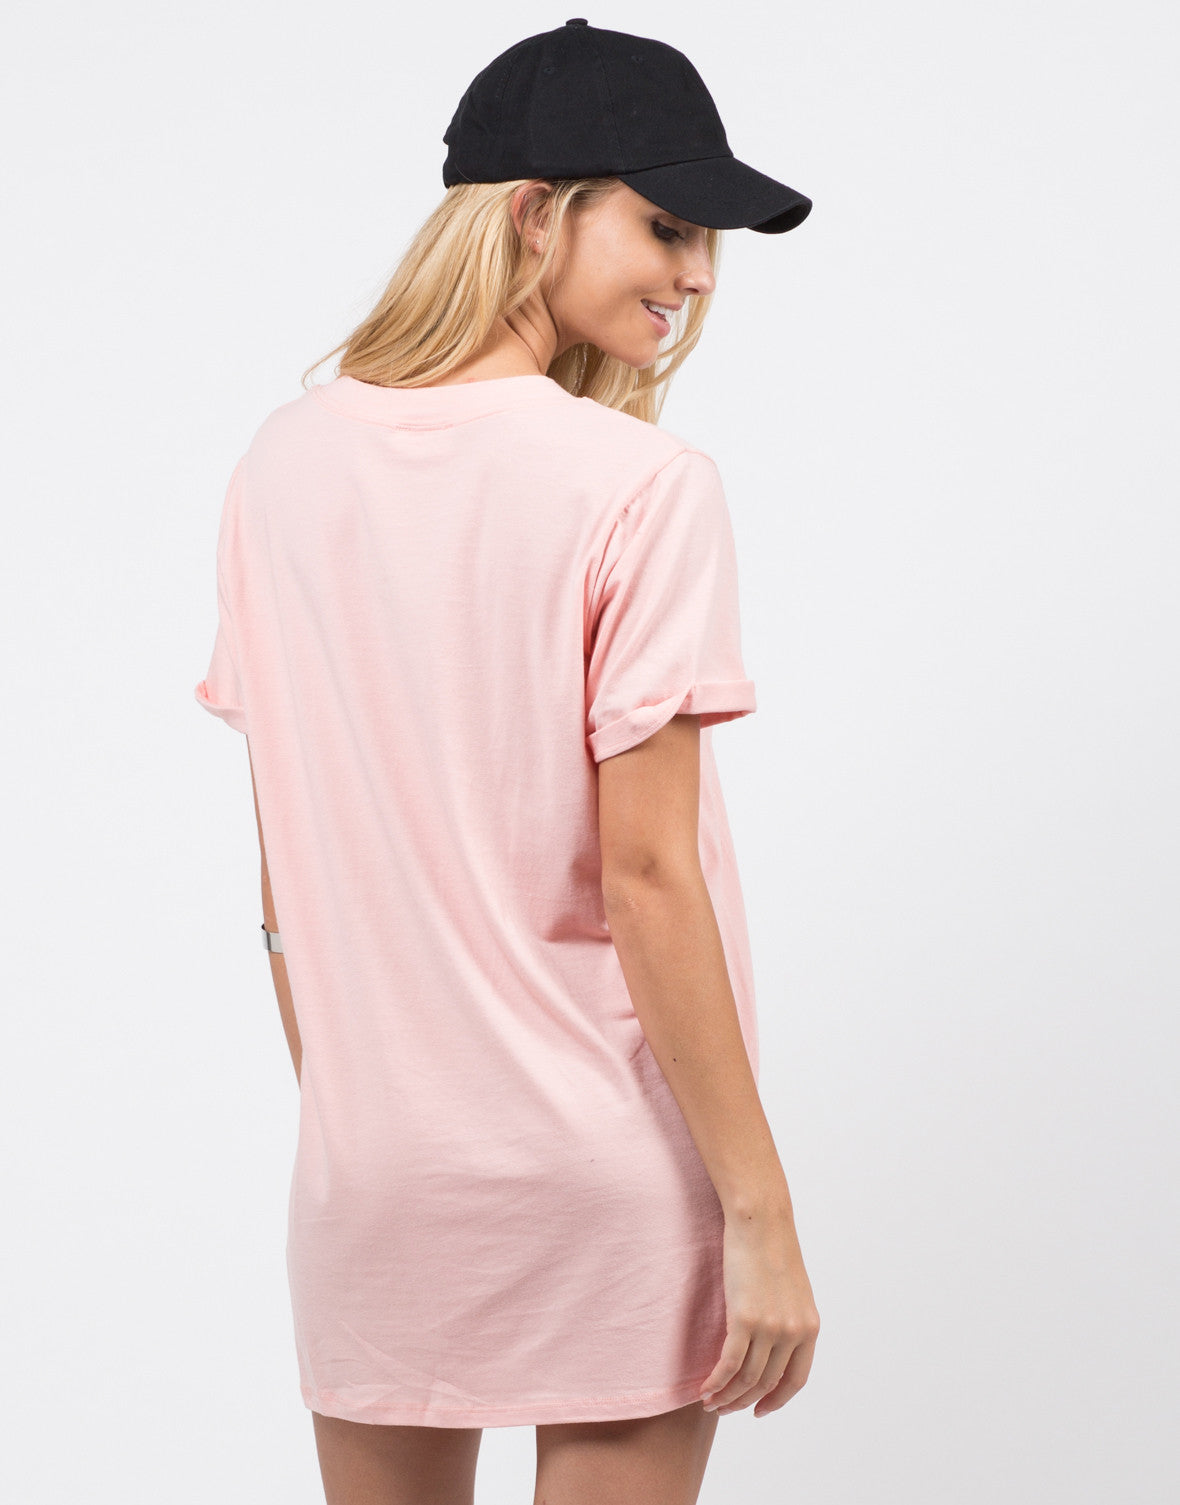 Back View of Bae-sic T-Shirt Dress